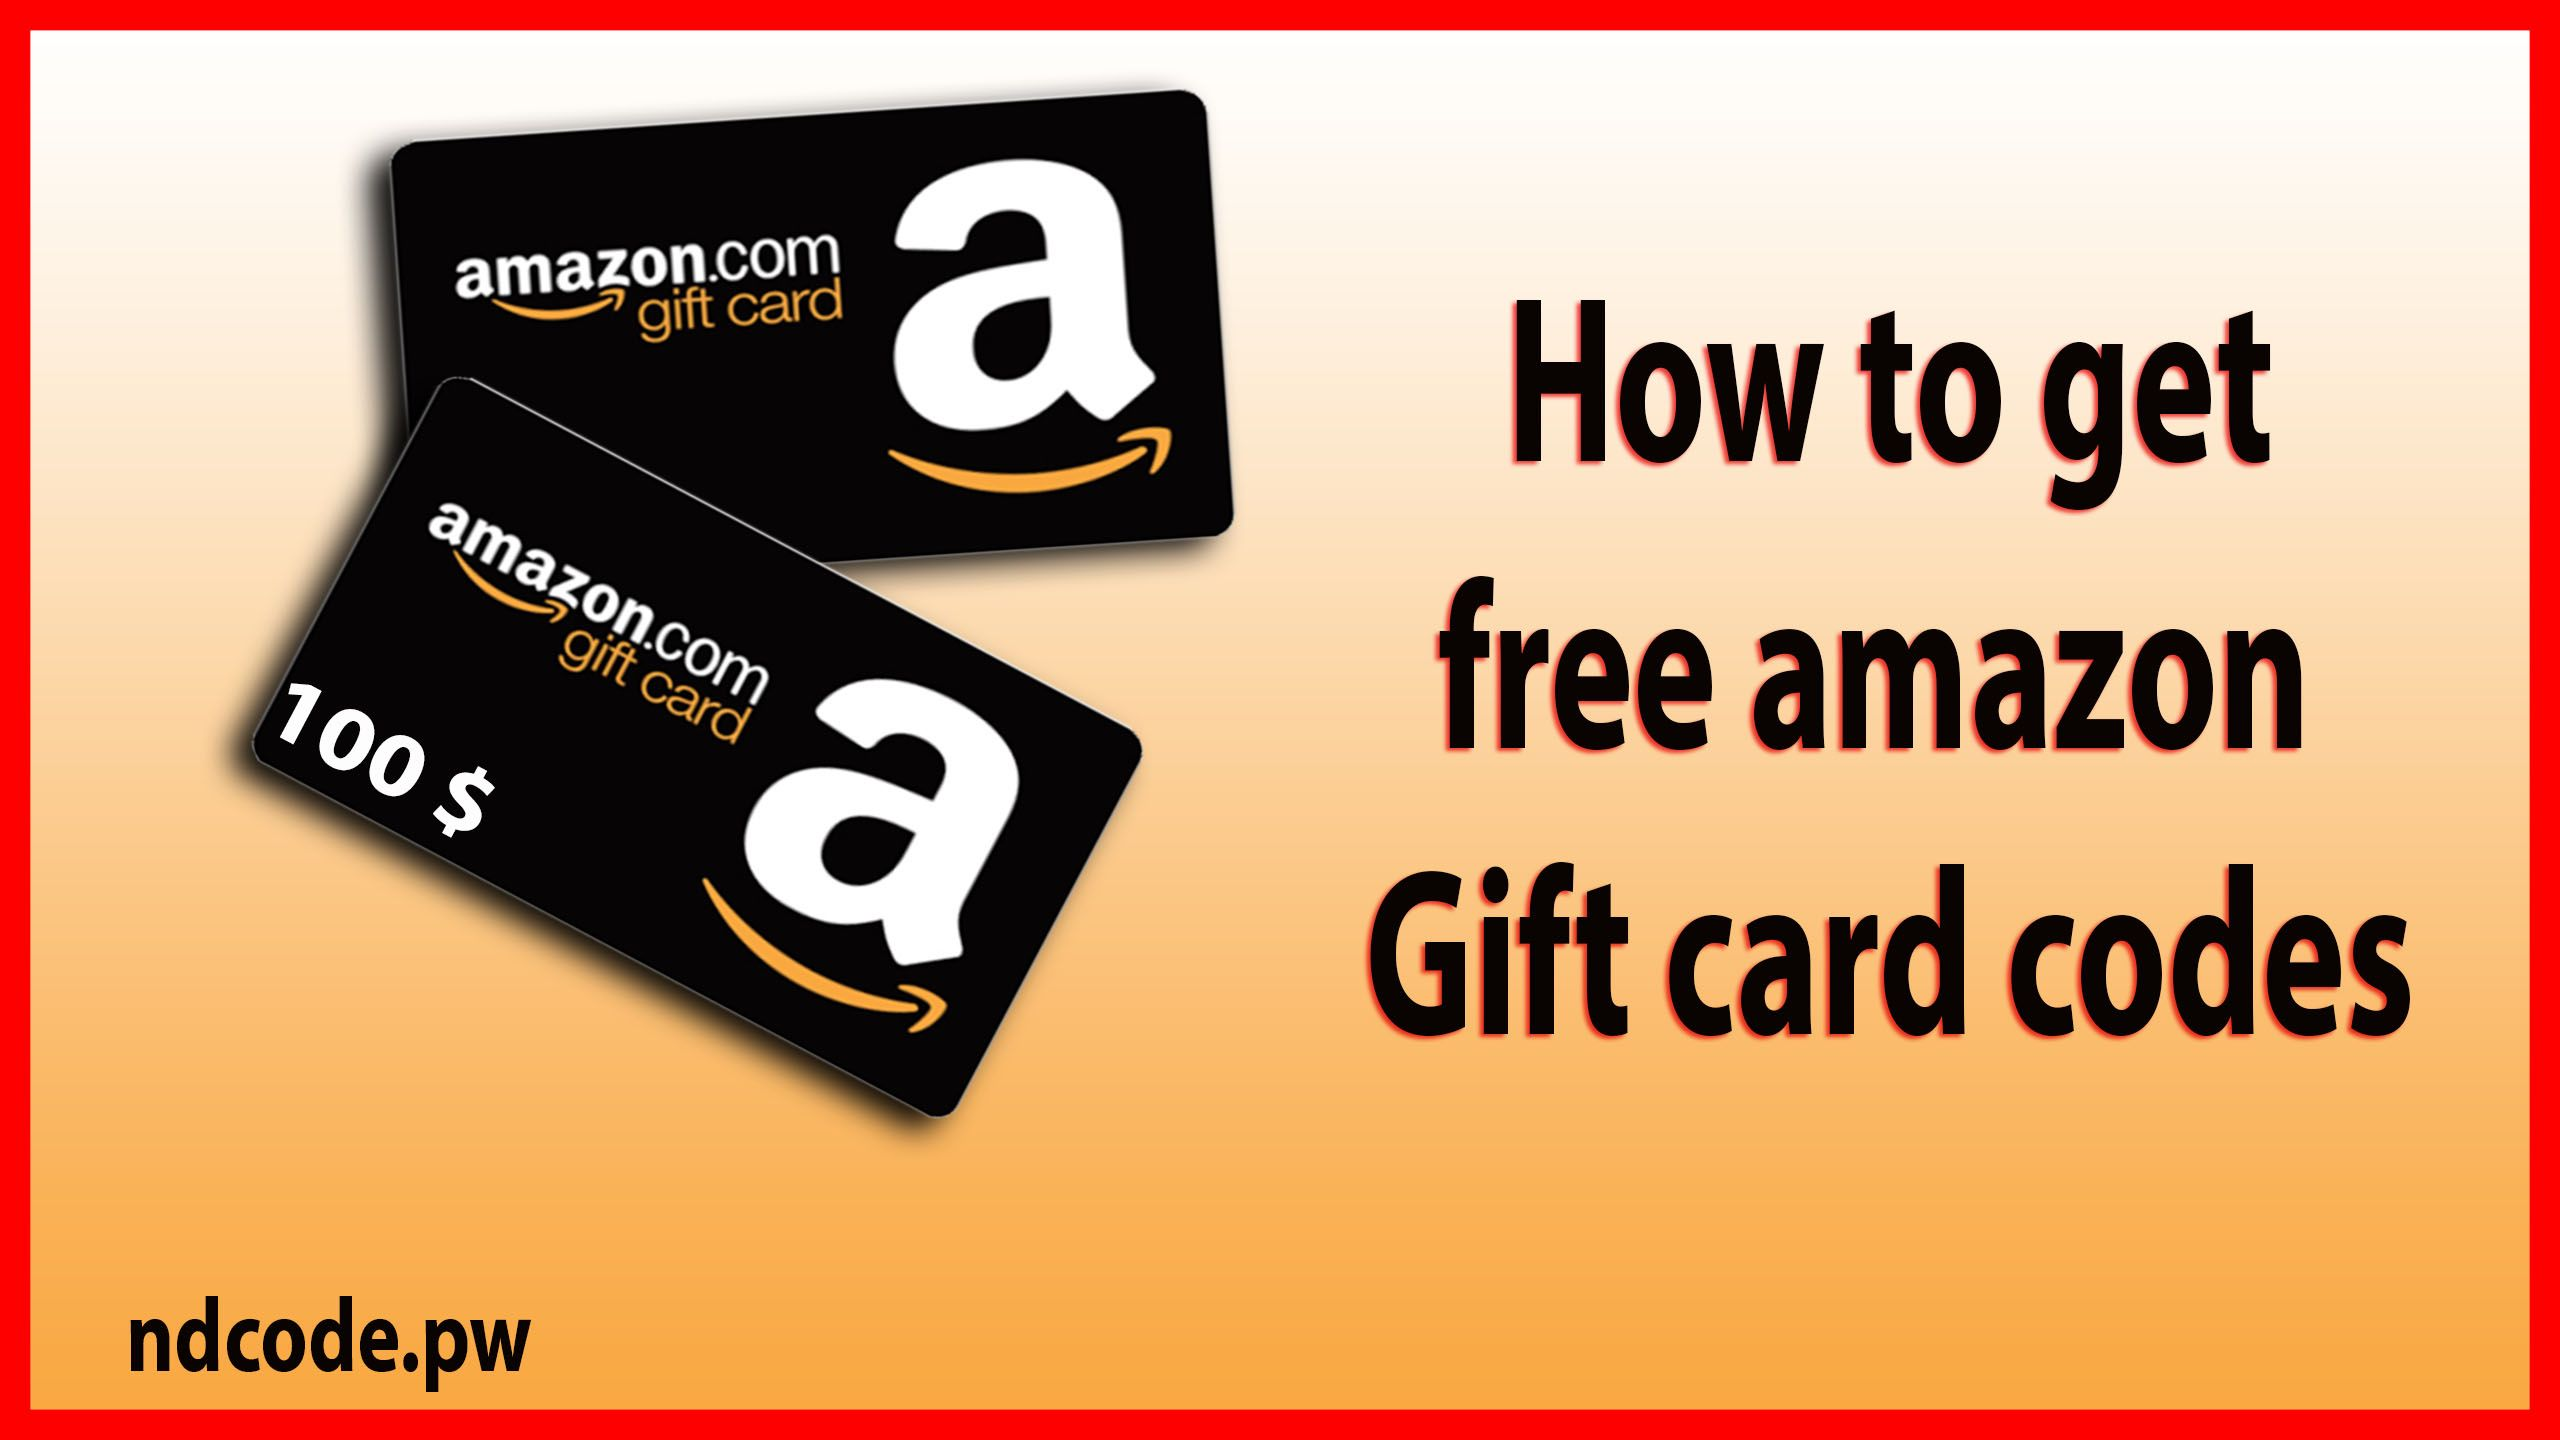 Free Amazon Gift Card Codes 2019 How To Get Free Amazone Gift Cards Amazone Shops Visit Http Amazon Gift Card Free Amazon Gift Cards Gift Card Specials